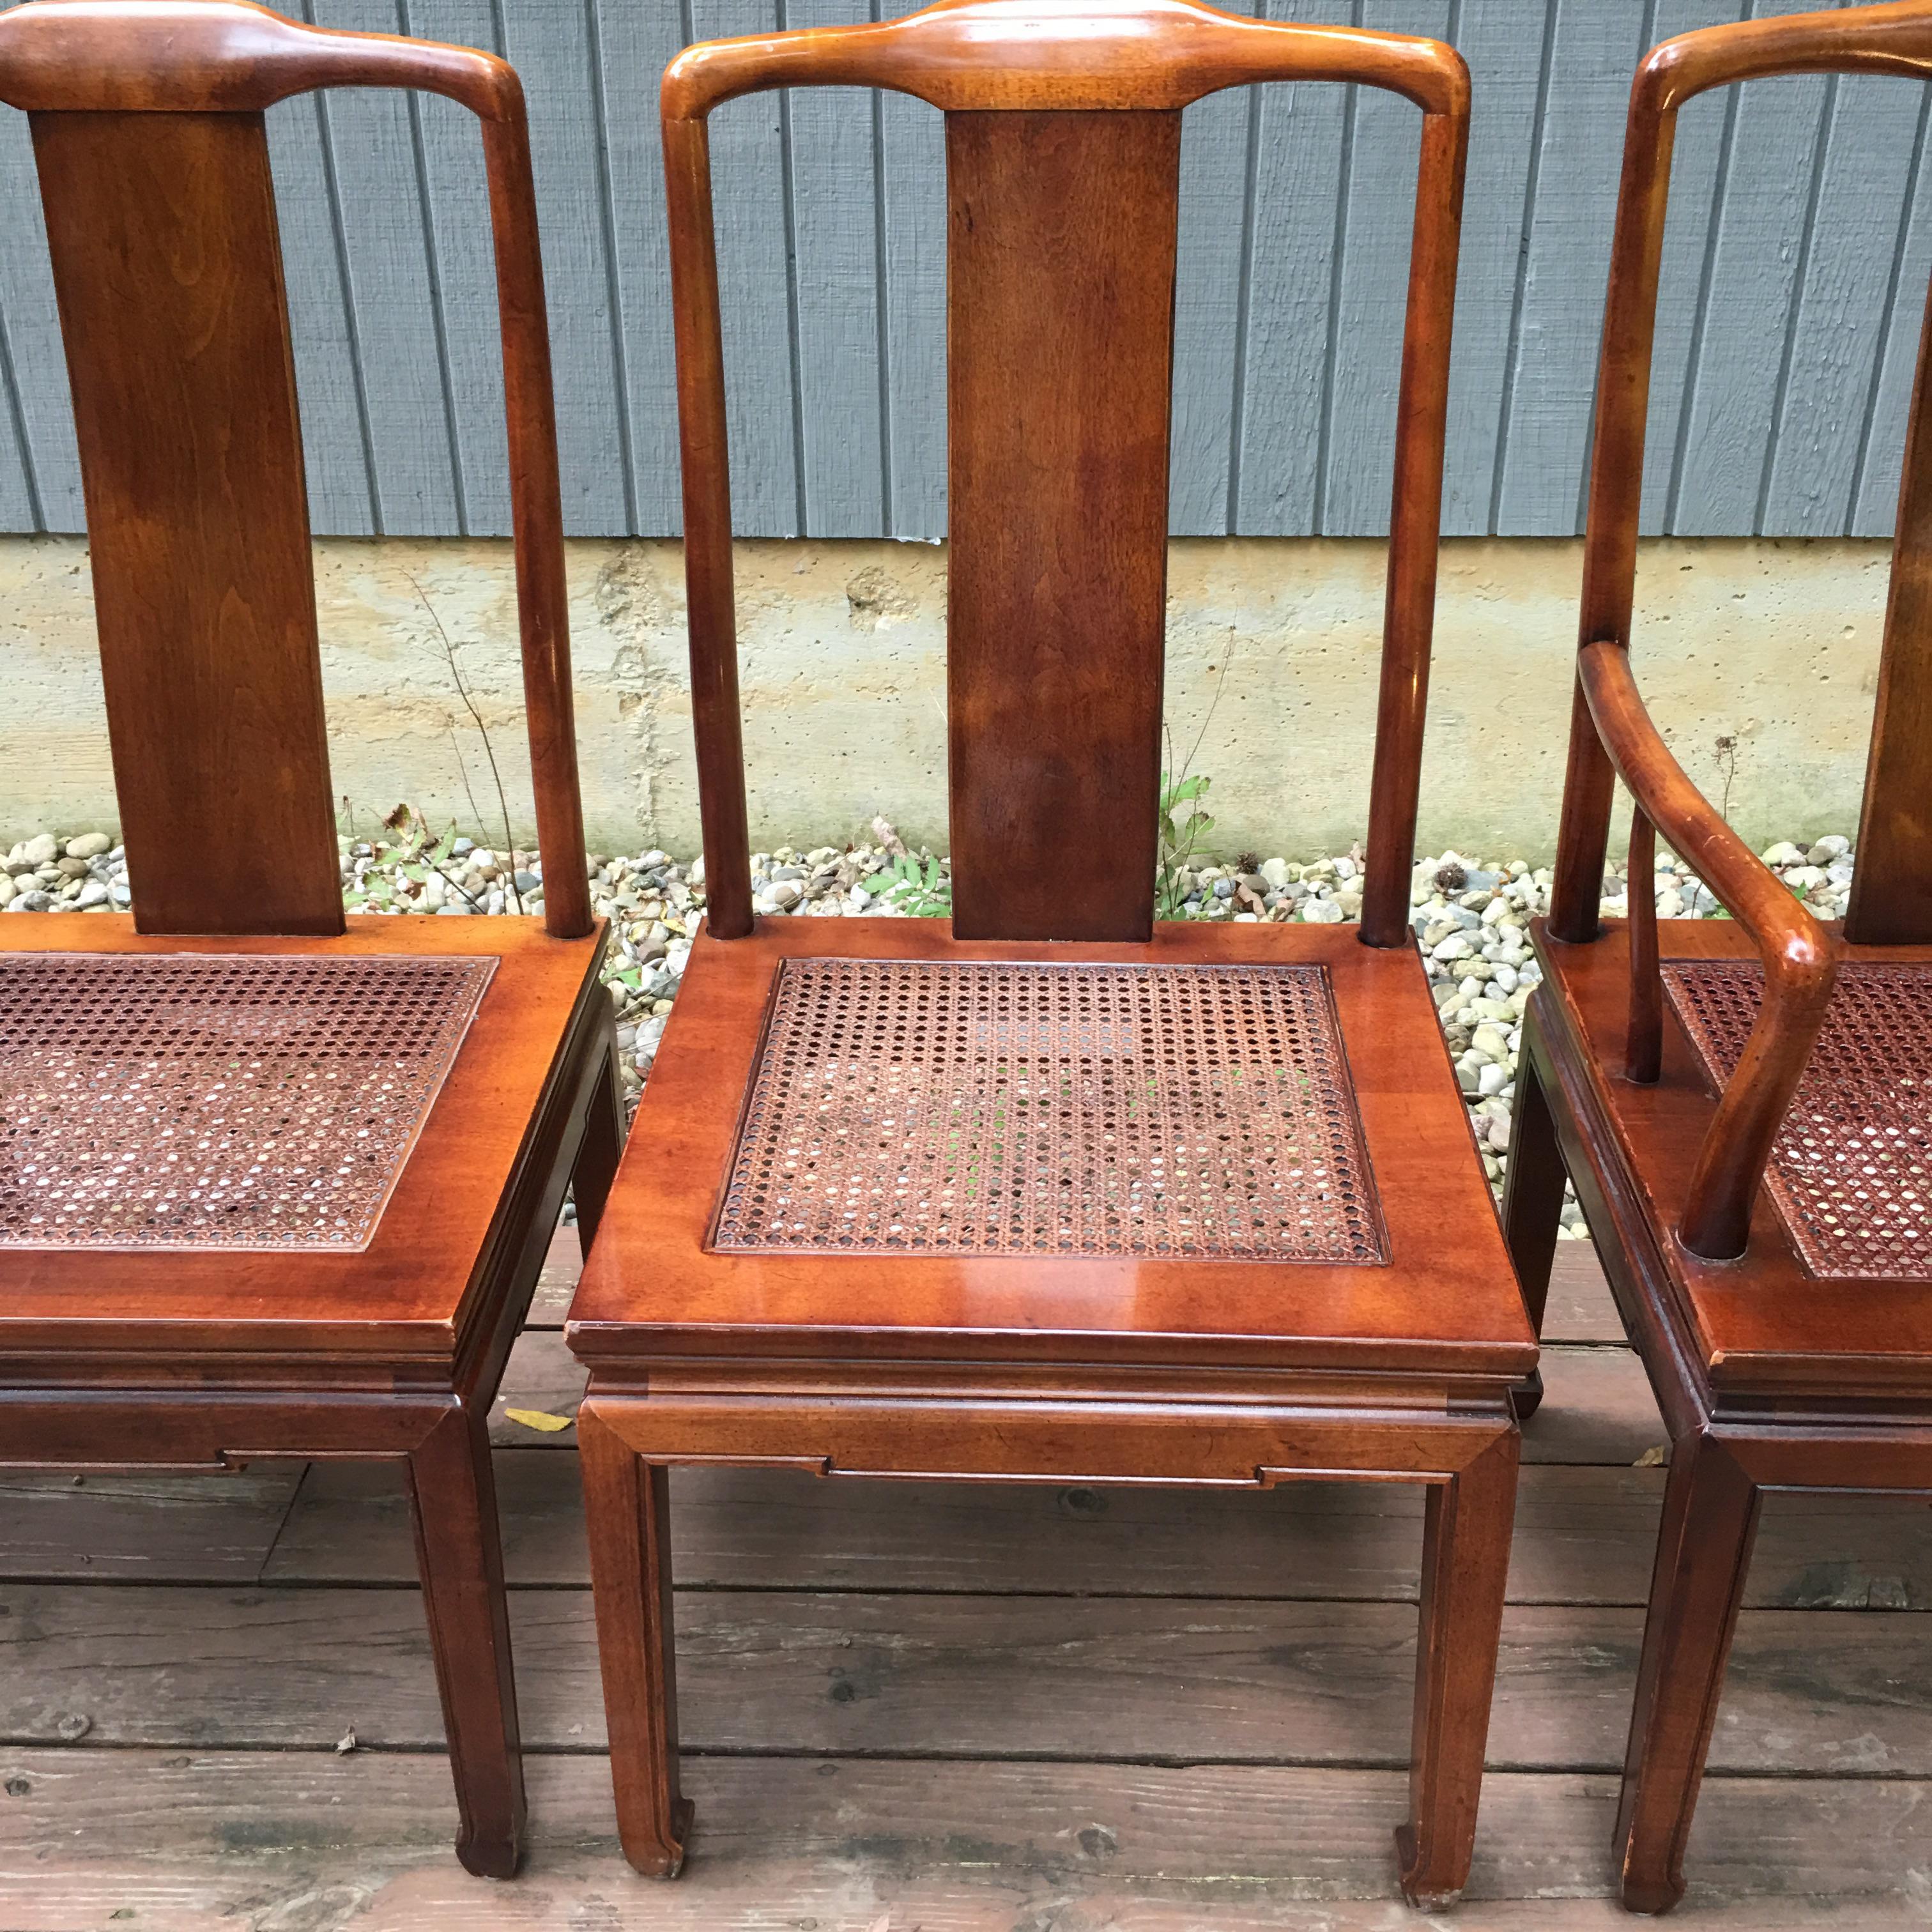 Ordinaire Asian Henredon Asian Inspired Dining Chairs   Set Of 6 For Sale   Image 3 Of